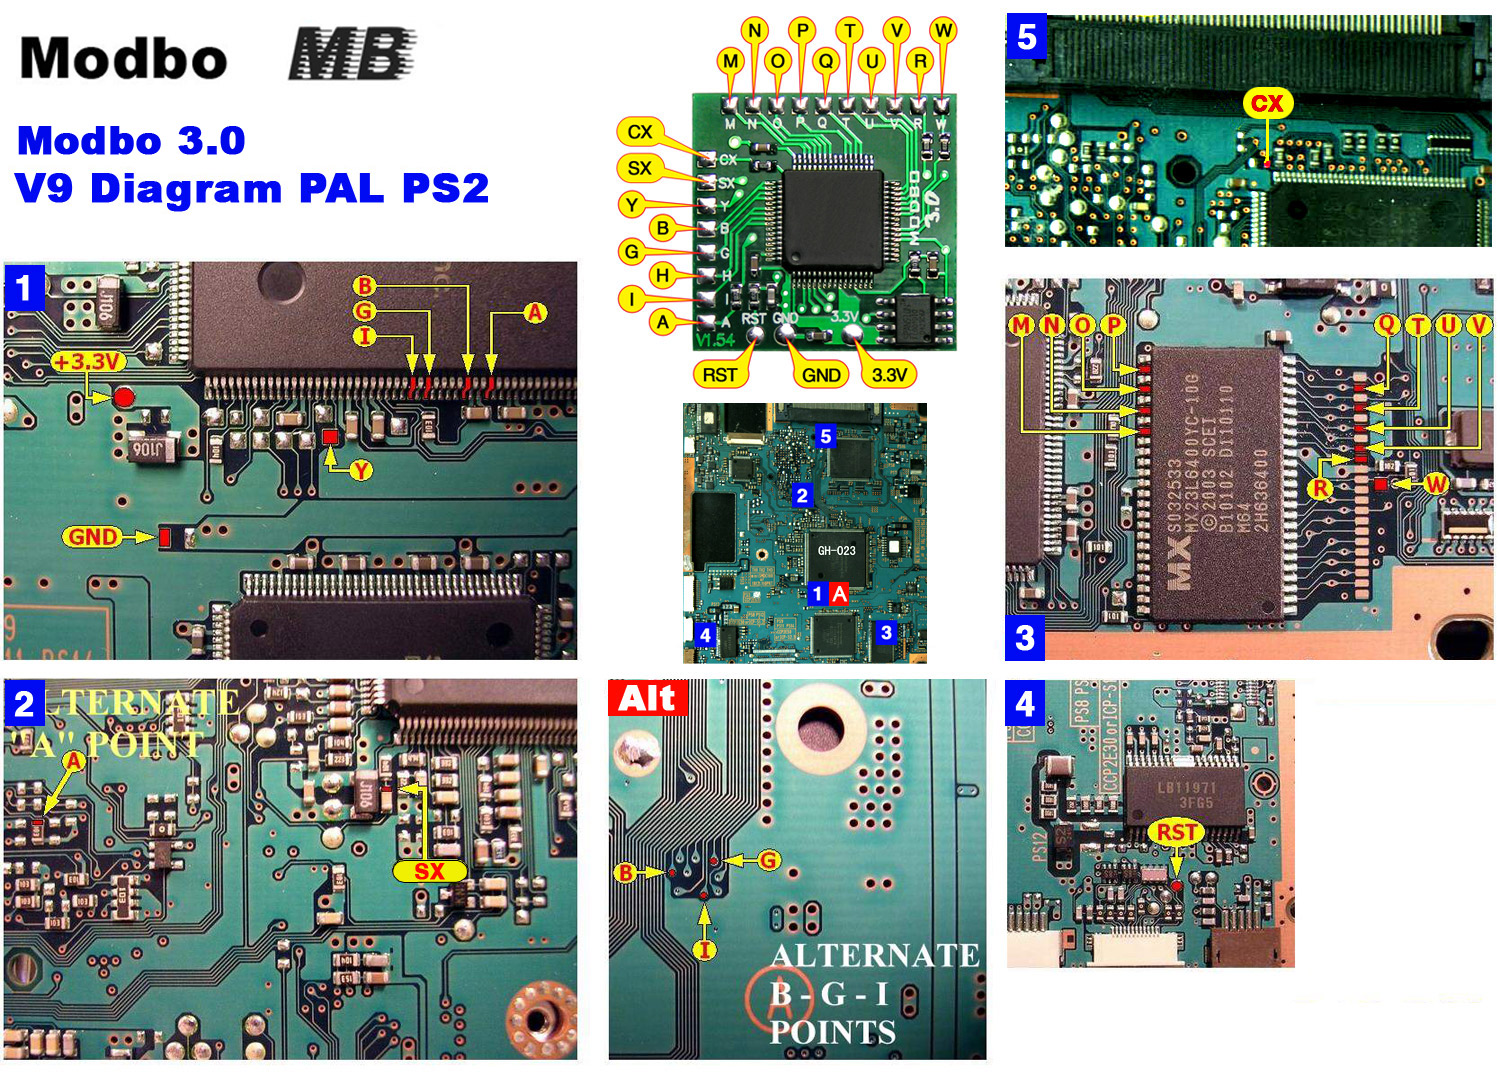 Playstation 2 Modbo Modchip Diagrams Kippykip Forums Wiring Diagram 1524637933639